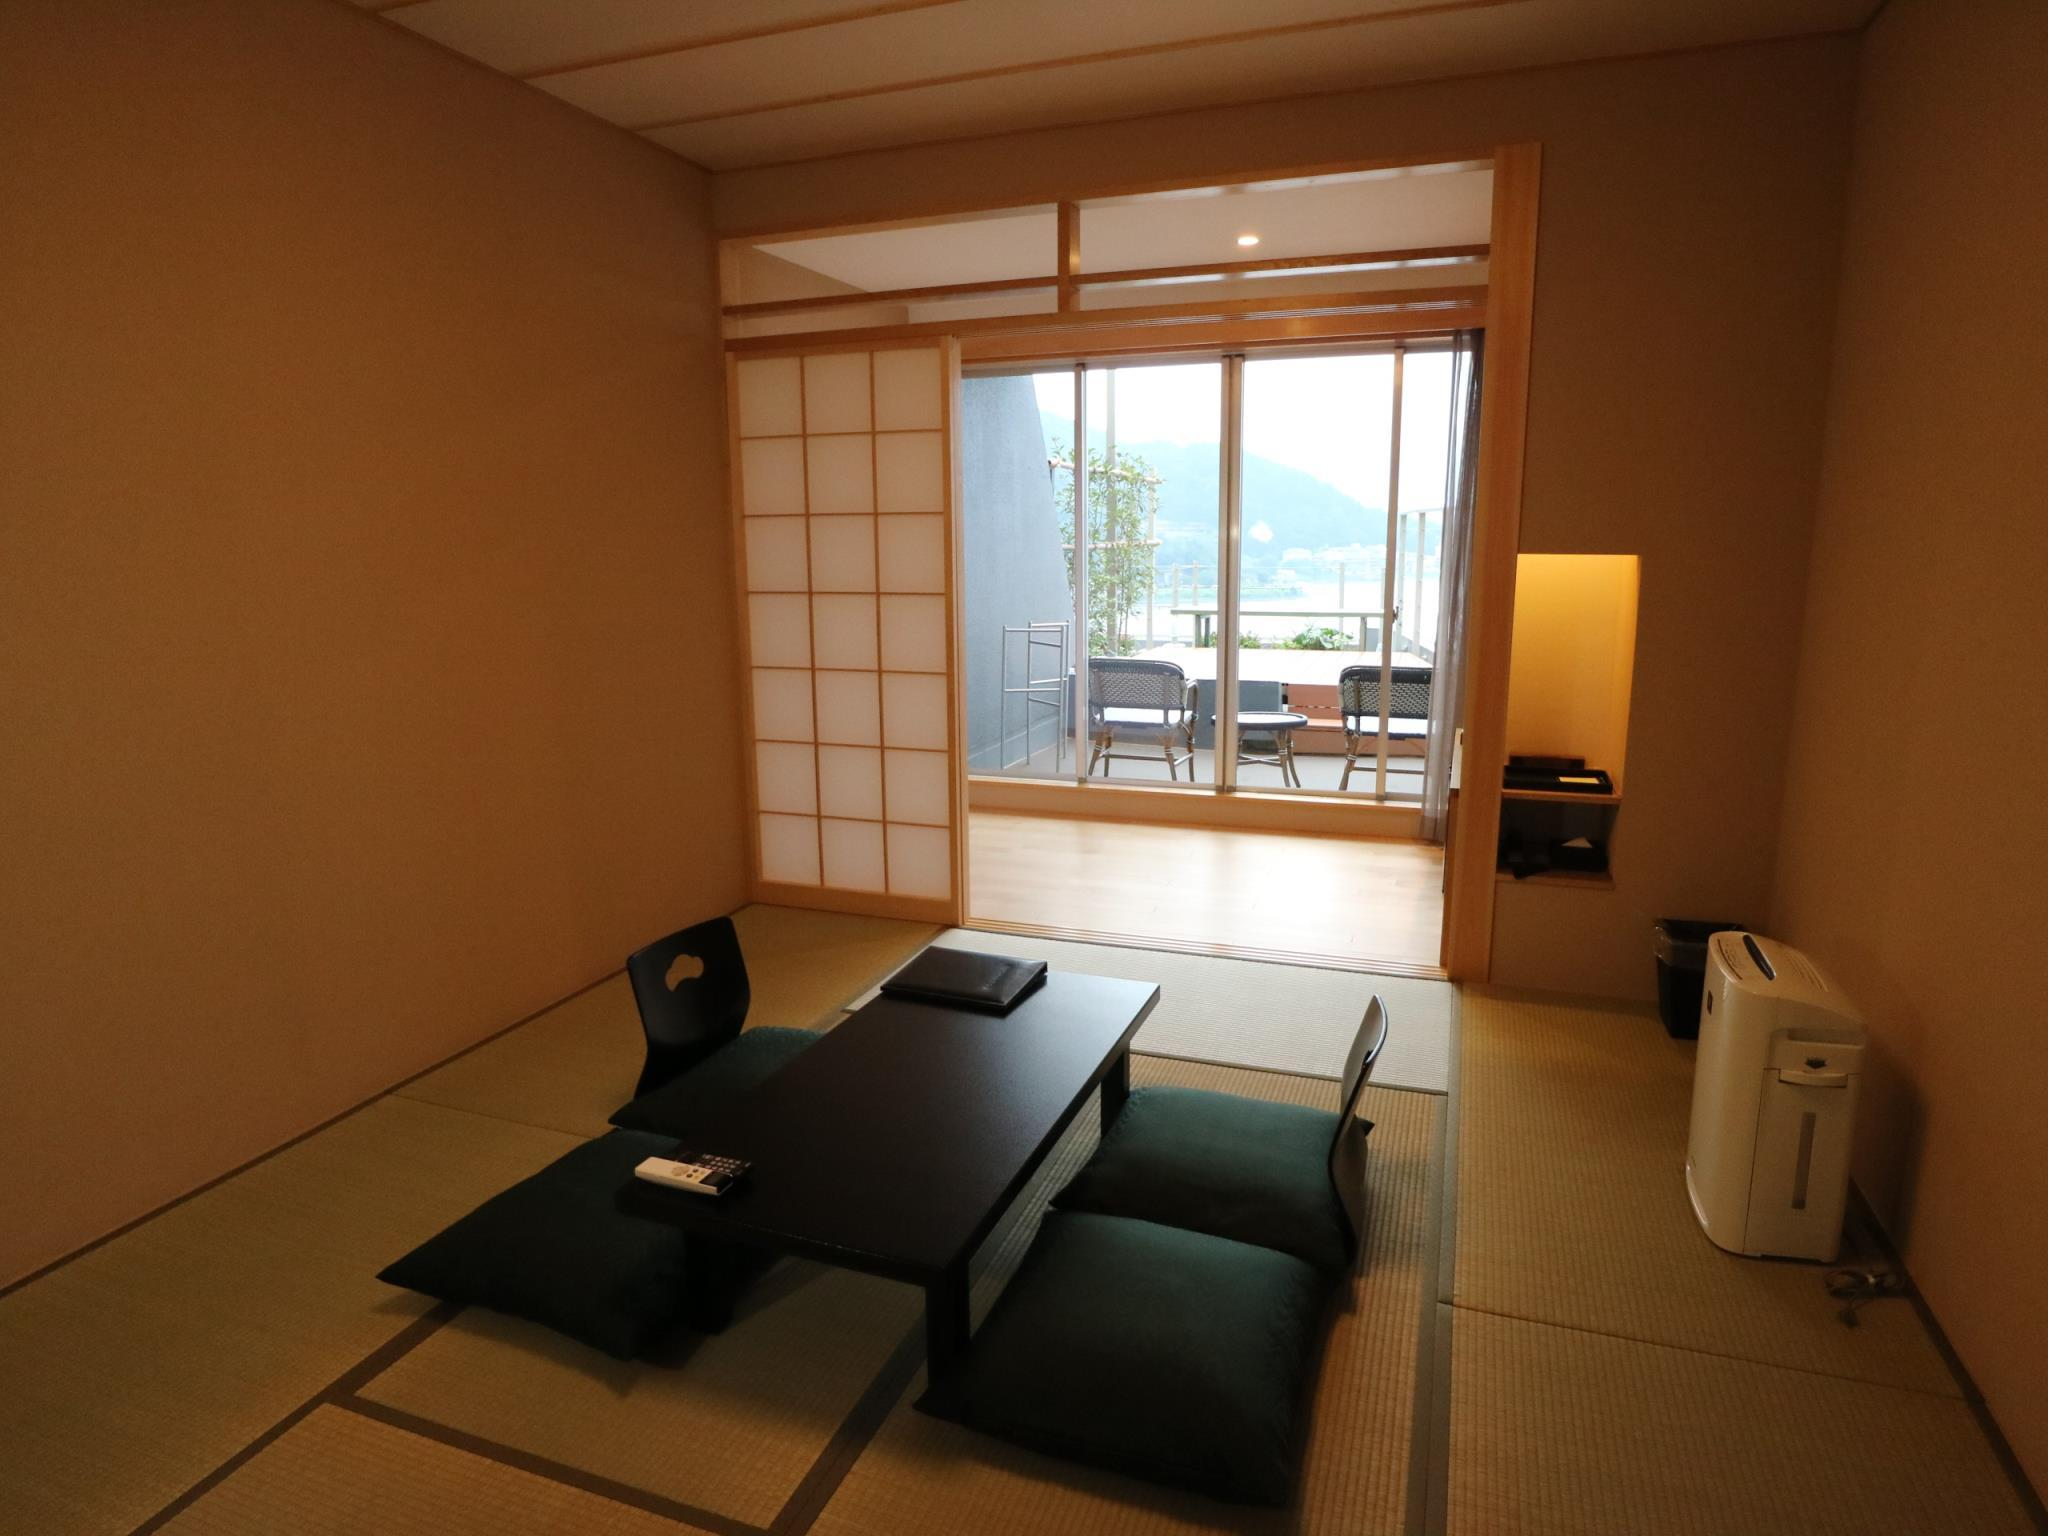 Mount Fuji and Lake View Japanese Style Room 1 with Balcony - Non-Smoking